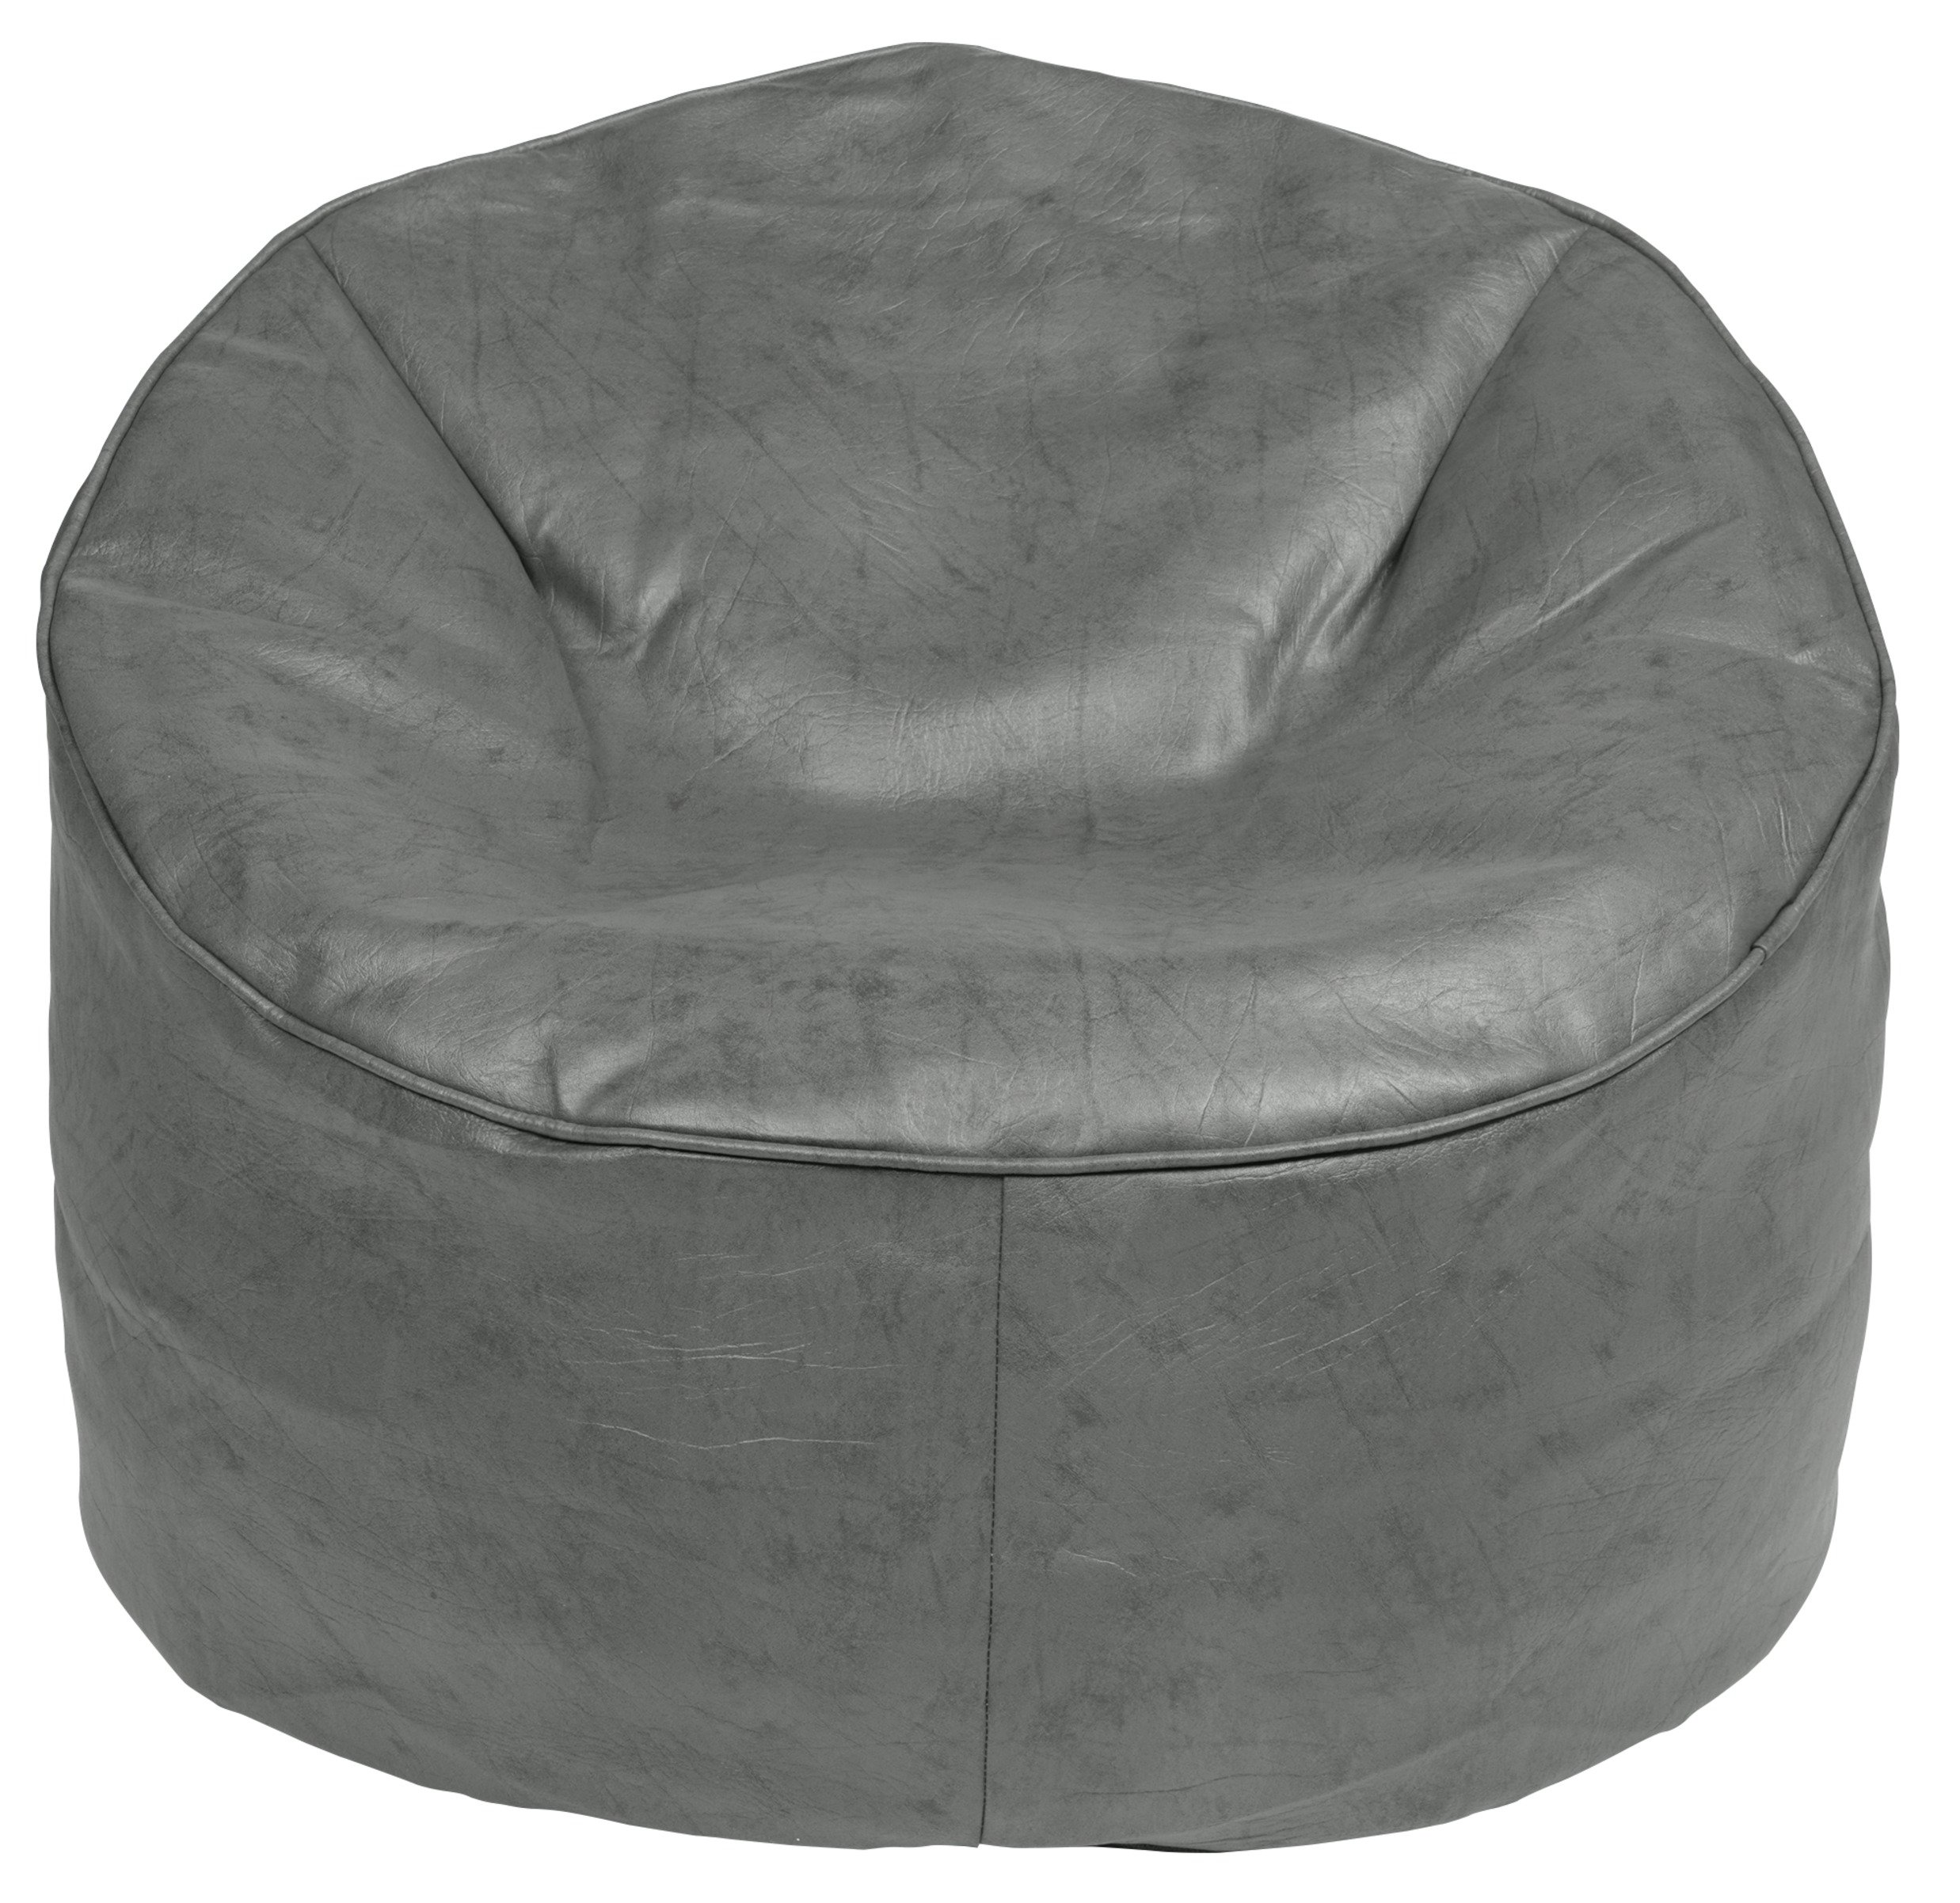 bean bag gaming chair argos covers party supplies buy home faux leather grey beanbags